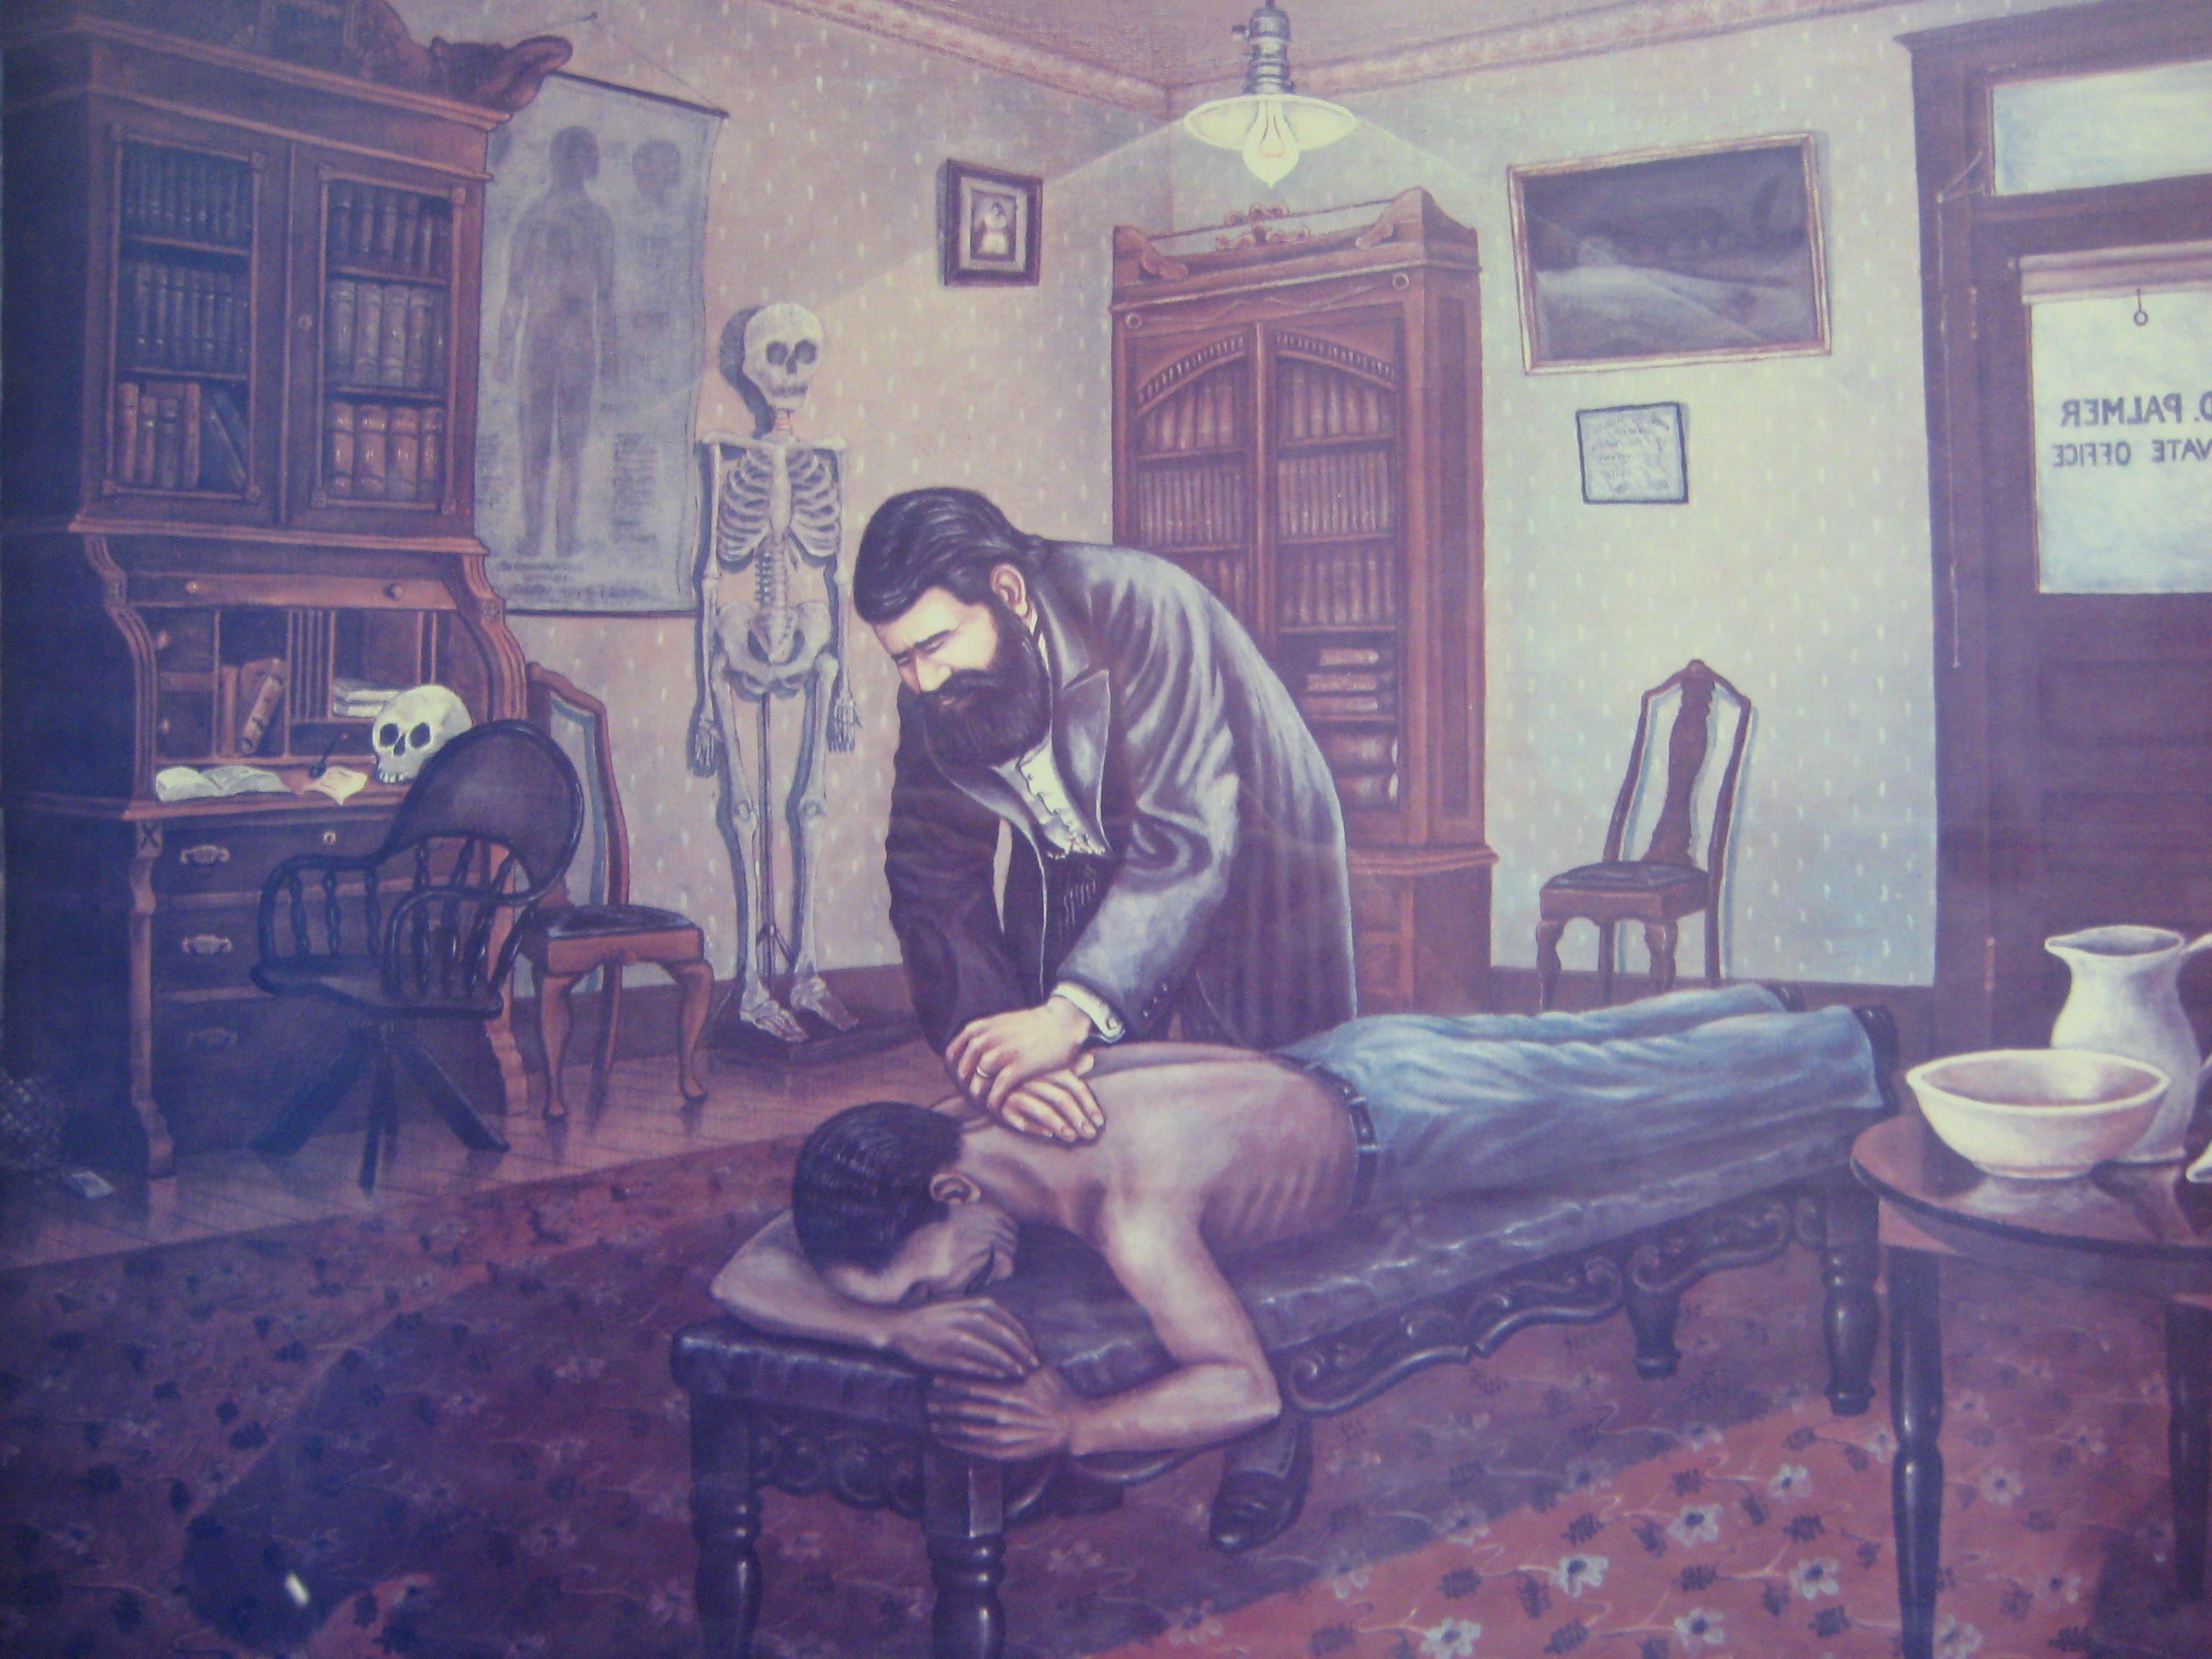 chiropractic adjustment The first chiropractic